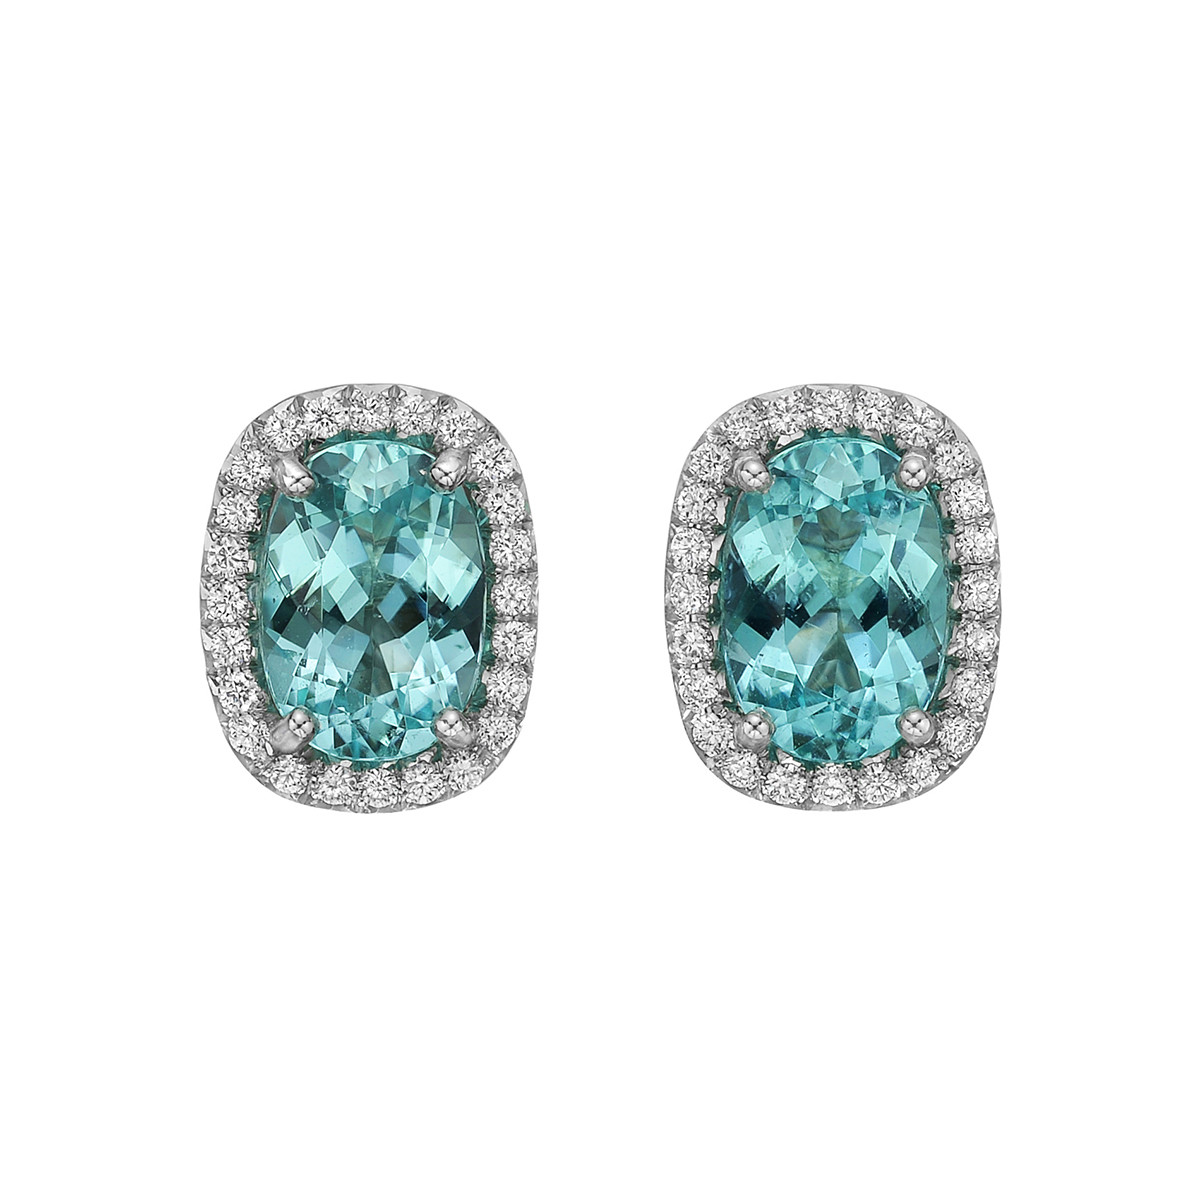 "3.13 Carat Paraiba Tourmaline ""Oriana"" Stud Earrings"